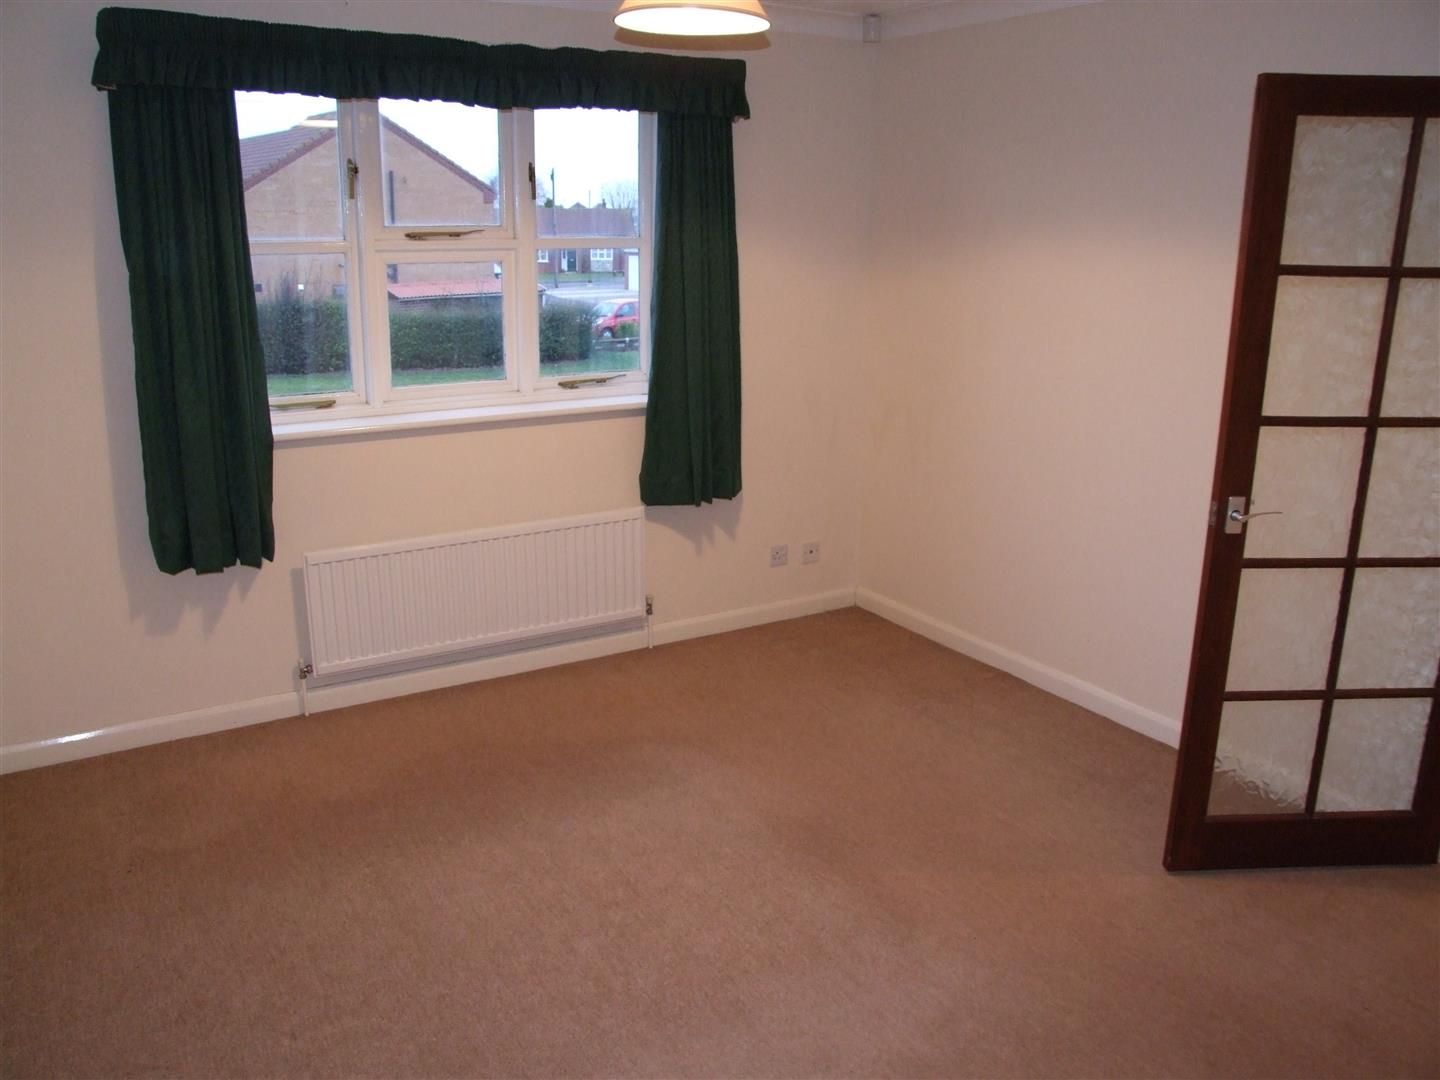 1 bed house to rent in Long Sutton Spalding, PE12 9RR 2